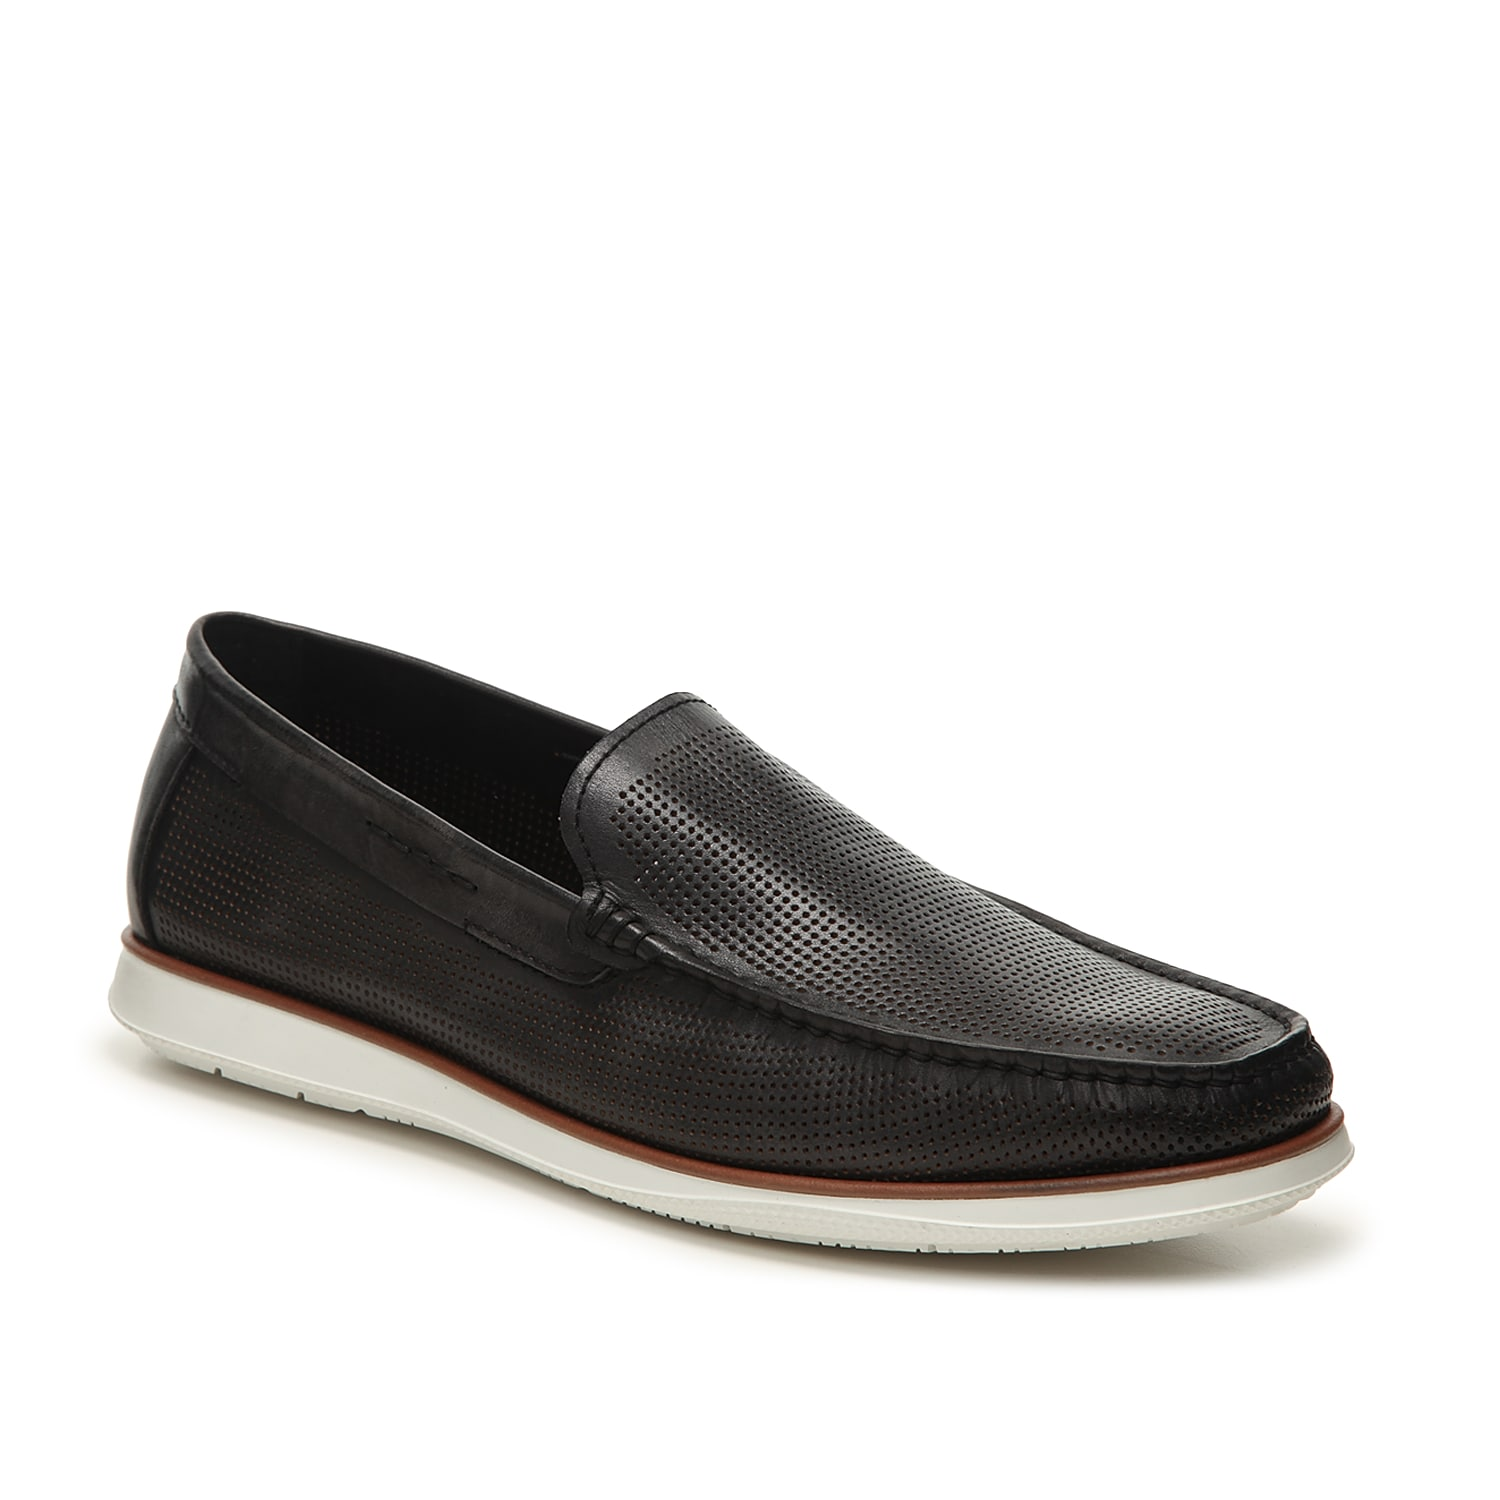 The Cyrus loafer from Kenneth Cole New York is perfect for your everyday shoe. This slip-on features a Techni-Cole™ cushioned footbed and a perforated leather that will keep your style looking fresh!